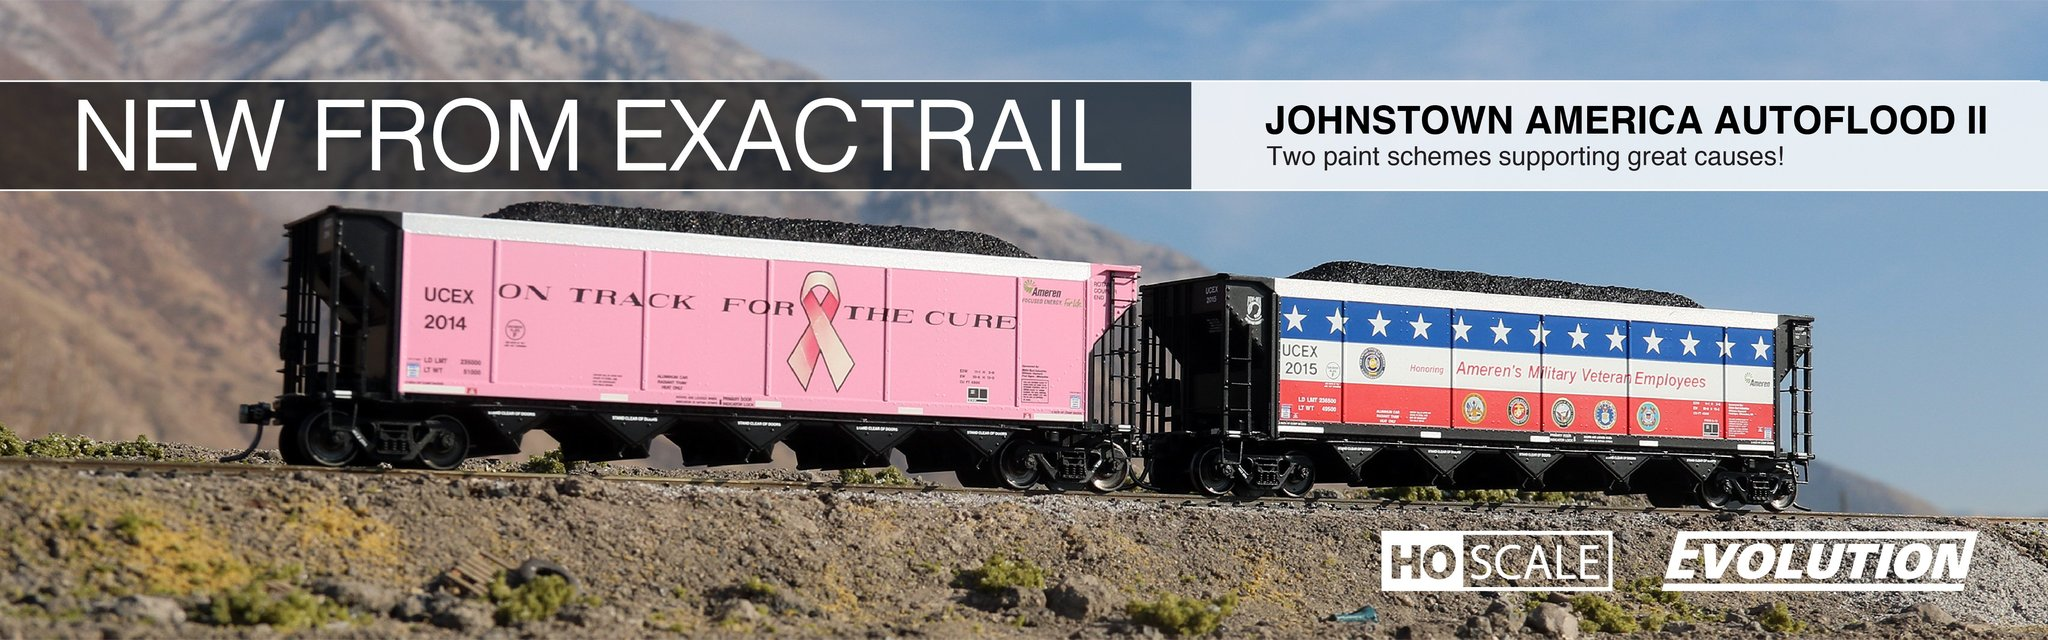 exactrail.com p-s 7315 waffle boxcar announcement page